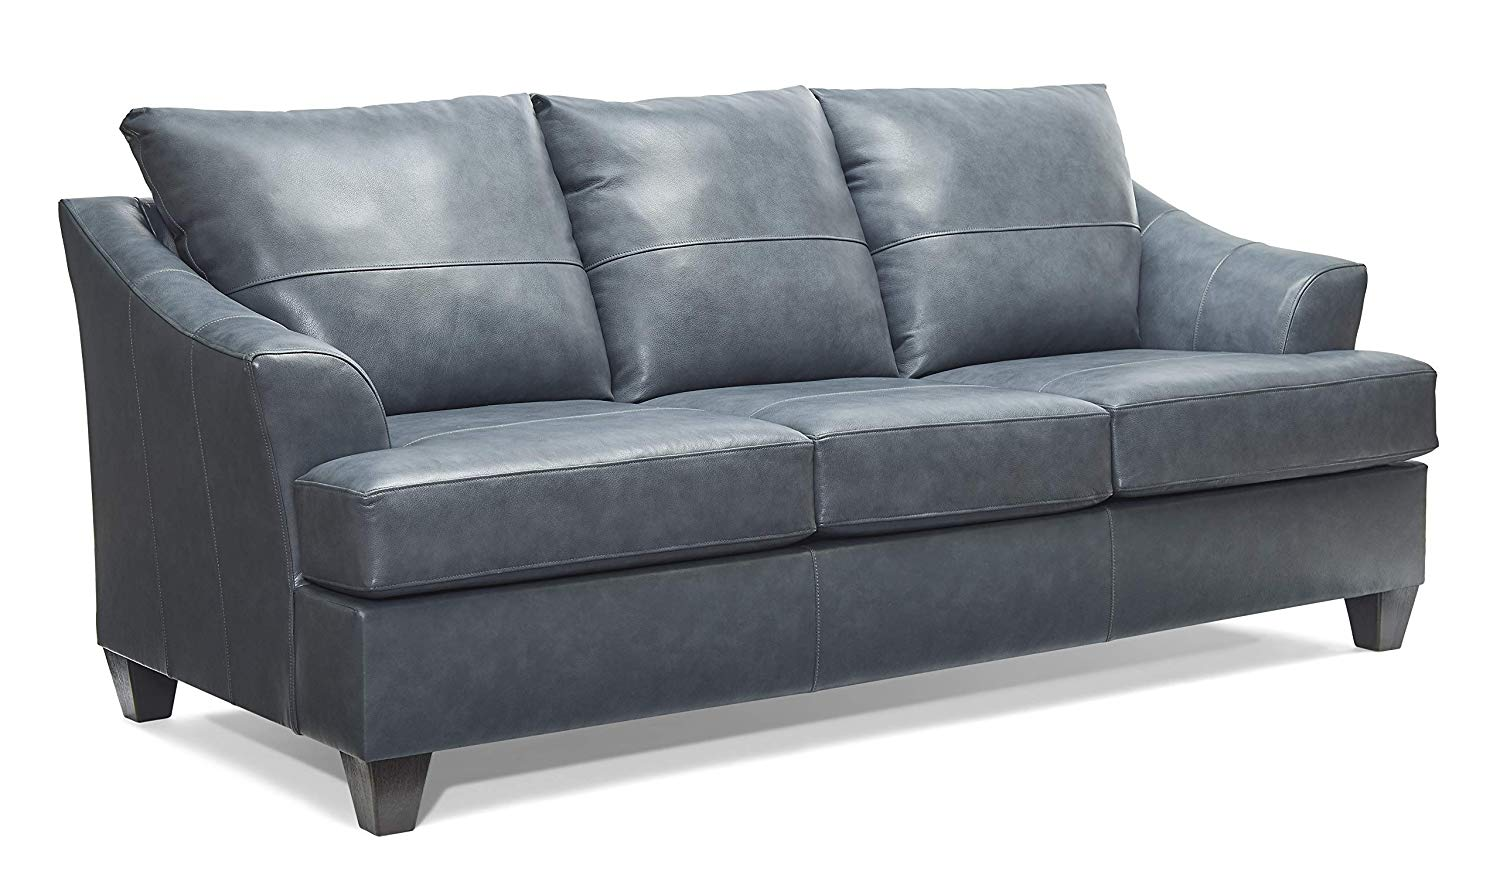 UN2063 Soft Touch Shale (Sofa) 2